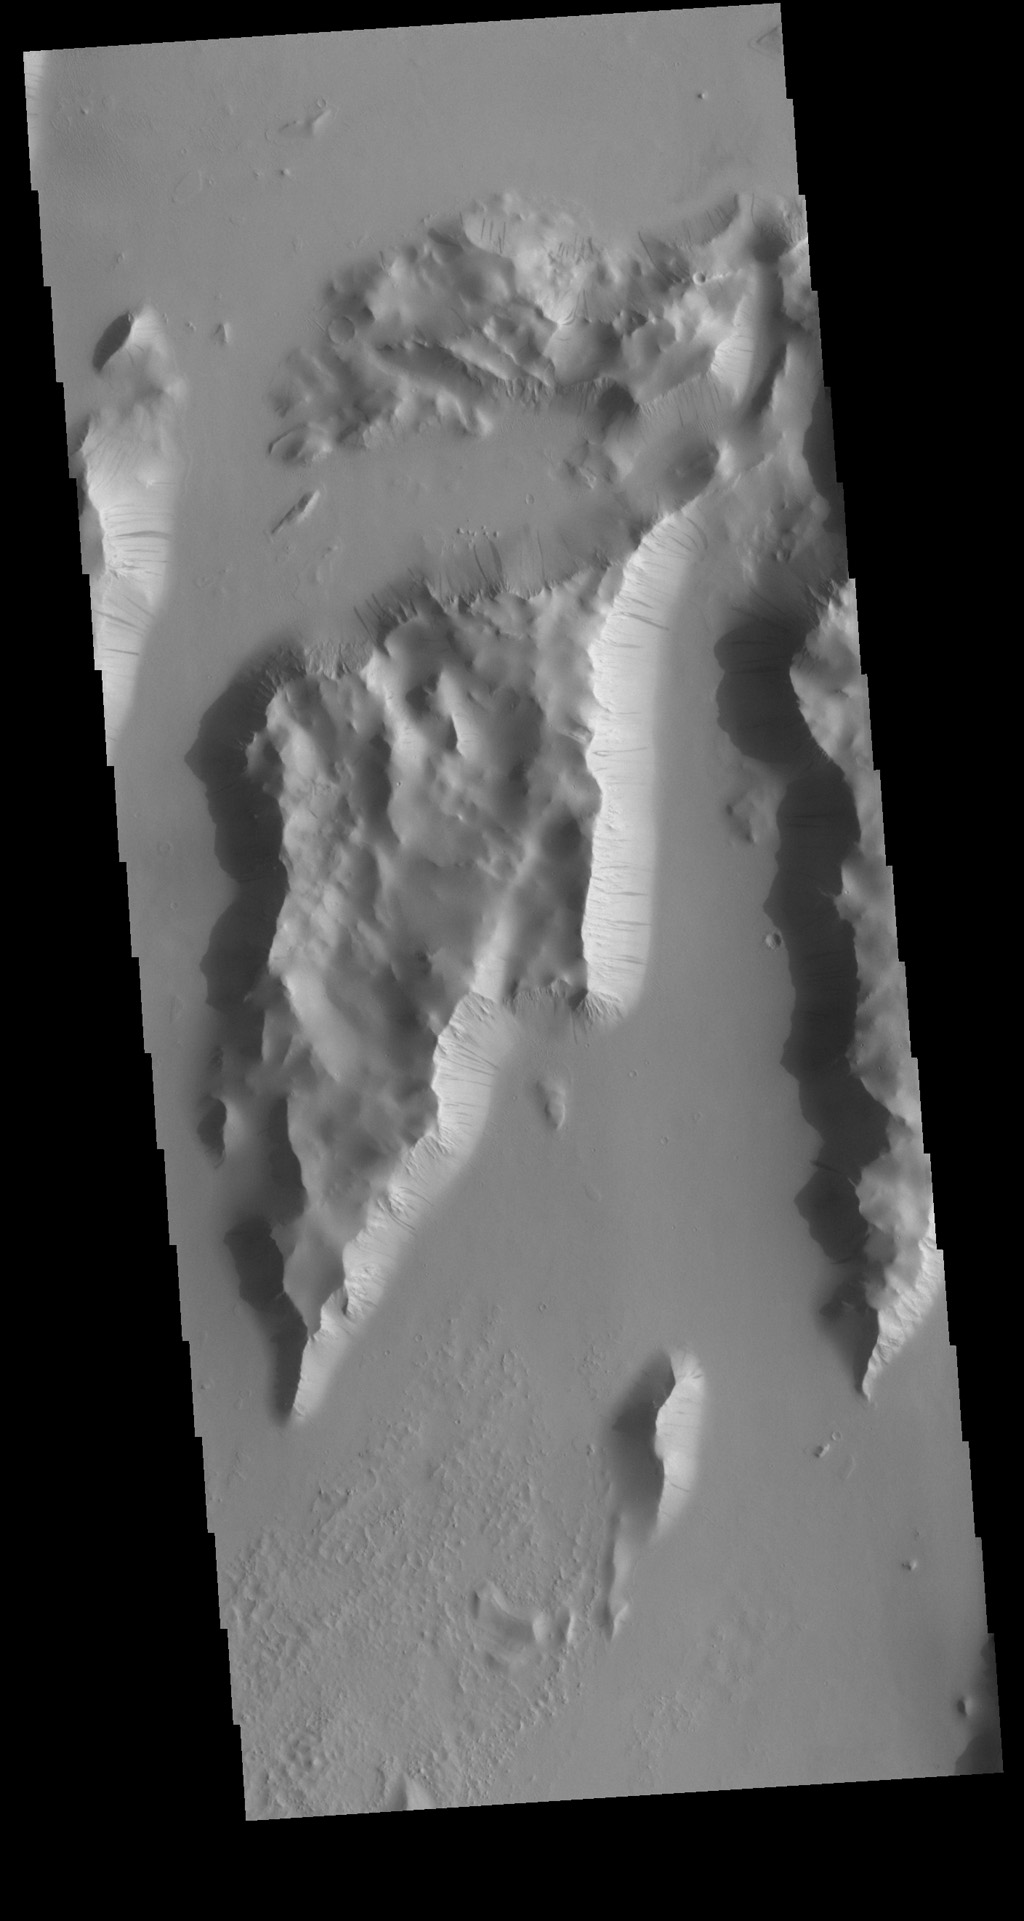 This image from NASA's Mars Odyssey shows Lycus Sulci, a very complex region surrounding the northern and western flanks of Olympus Mons featuring some of the tectonic ridges as well as the dark slope streaks that are common in this region.